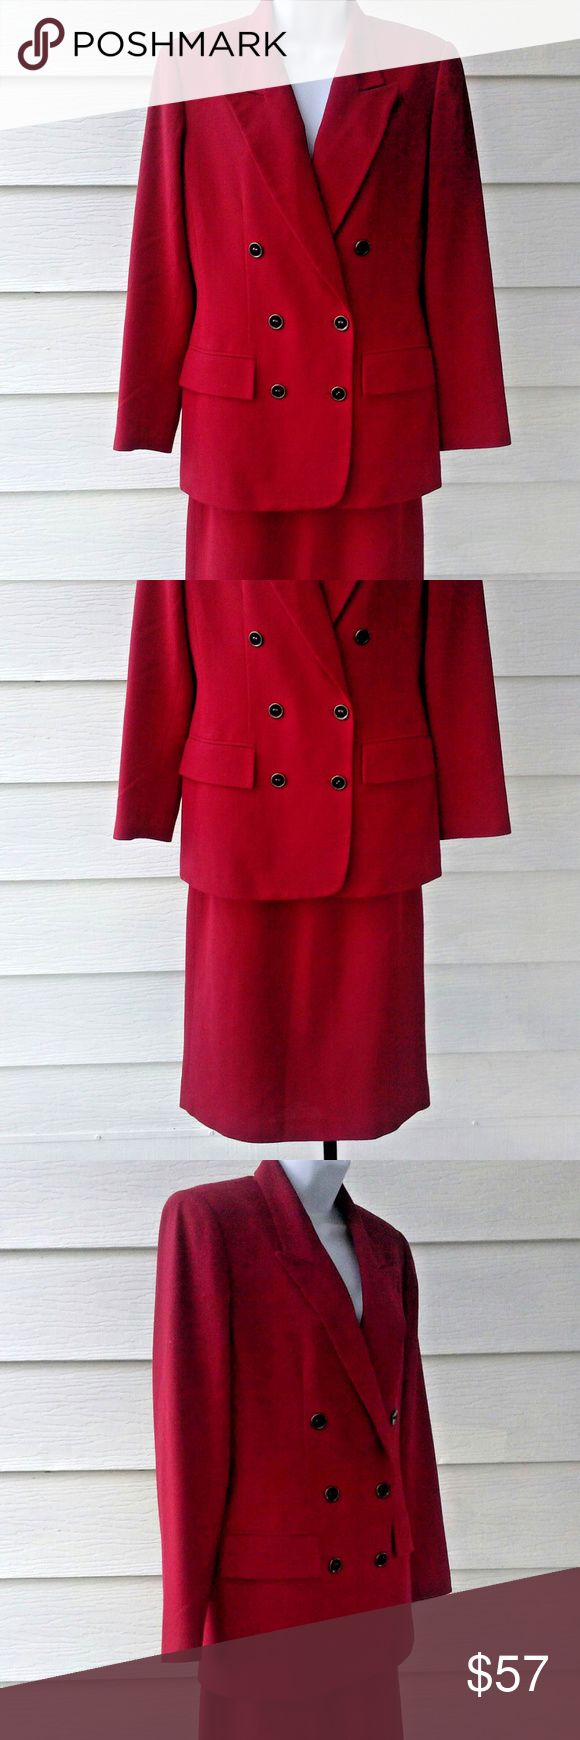 """Skirt Suit Red Wool Career Double Breasted Size 6 Beautiful classic red skirt suit, 2 pc. 100% wool, fully lined, tailored fit, back zipper and button closure,  and a 1 1/2"""" waistband. This suit will come to you freshly cleaned and ready to wear! Party season is around the corner, don't let this one get away! Approximate measurements laying flat are:       Jacket Shoulders 15 1/2"""" Bust 19 3/4"""" Waist 17"""" Hips 19 1/2"""" Length 28 1/2"""" Sleeves 23 3/4"""" Hem 20 1/4""""        Skirt Waist 13 3/4"""" Hips…"""